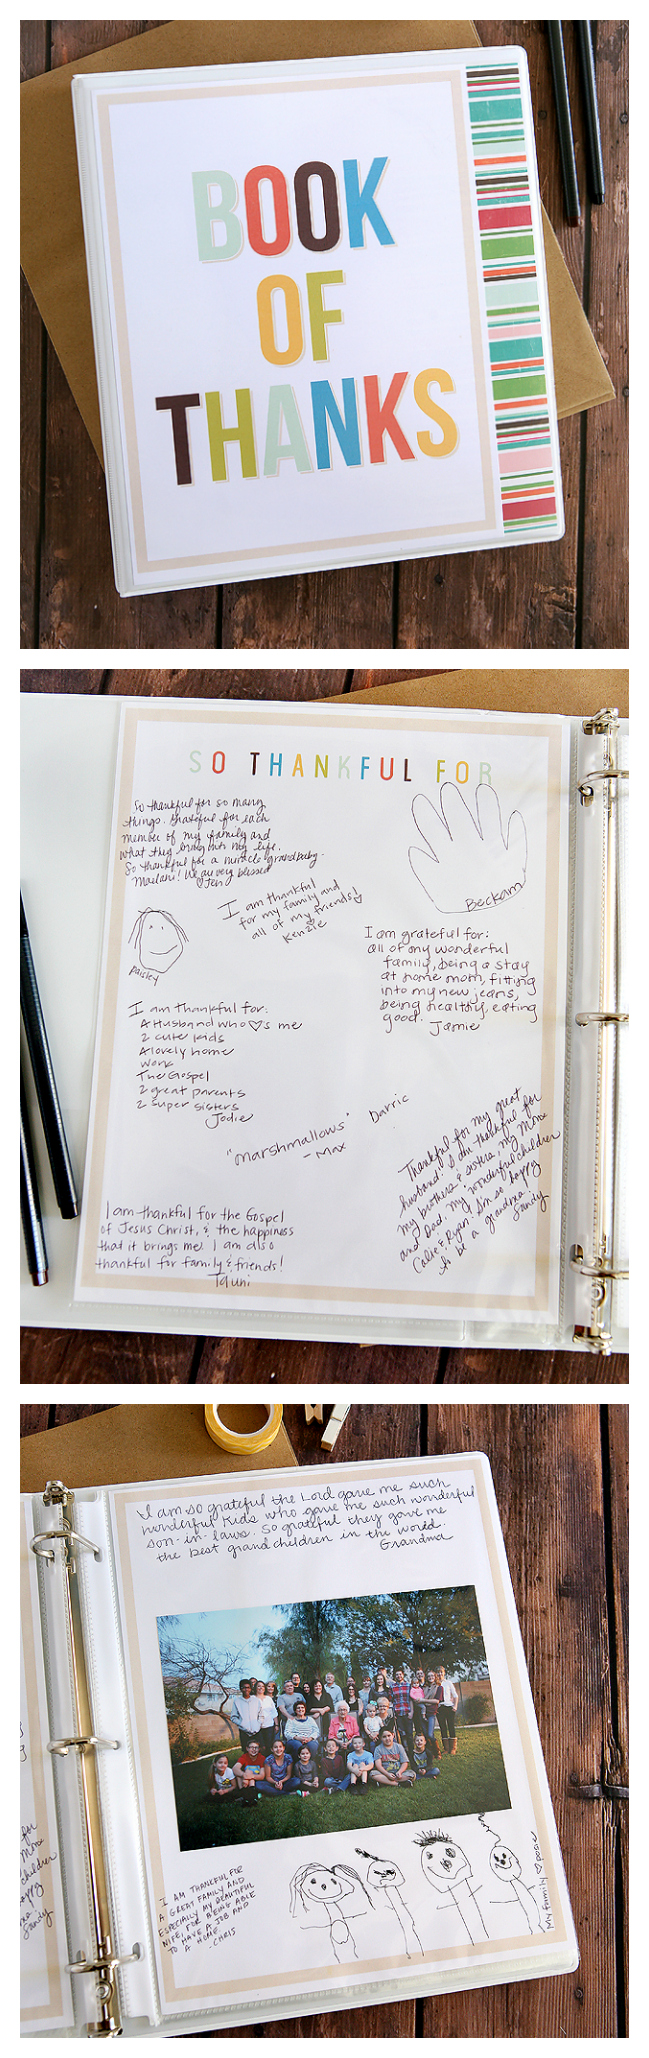 Book of Thanks | A Thanksgiving Tradition, Have everyone write what they are thankful and add a picture each year!